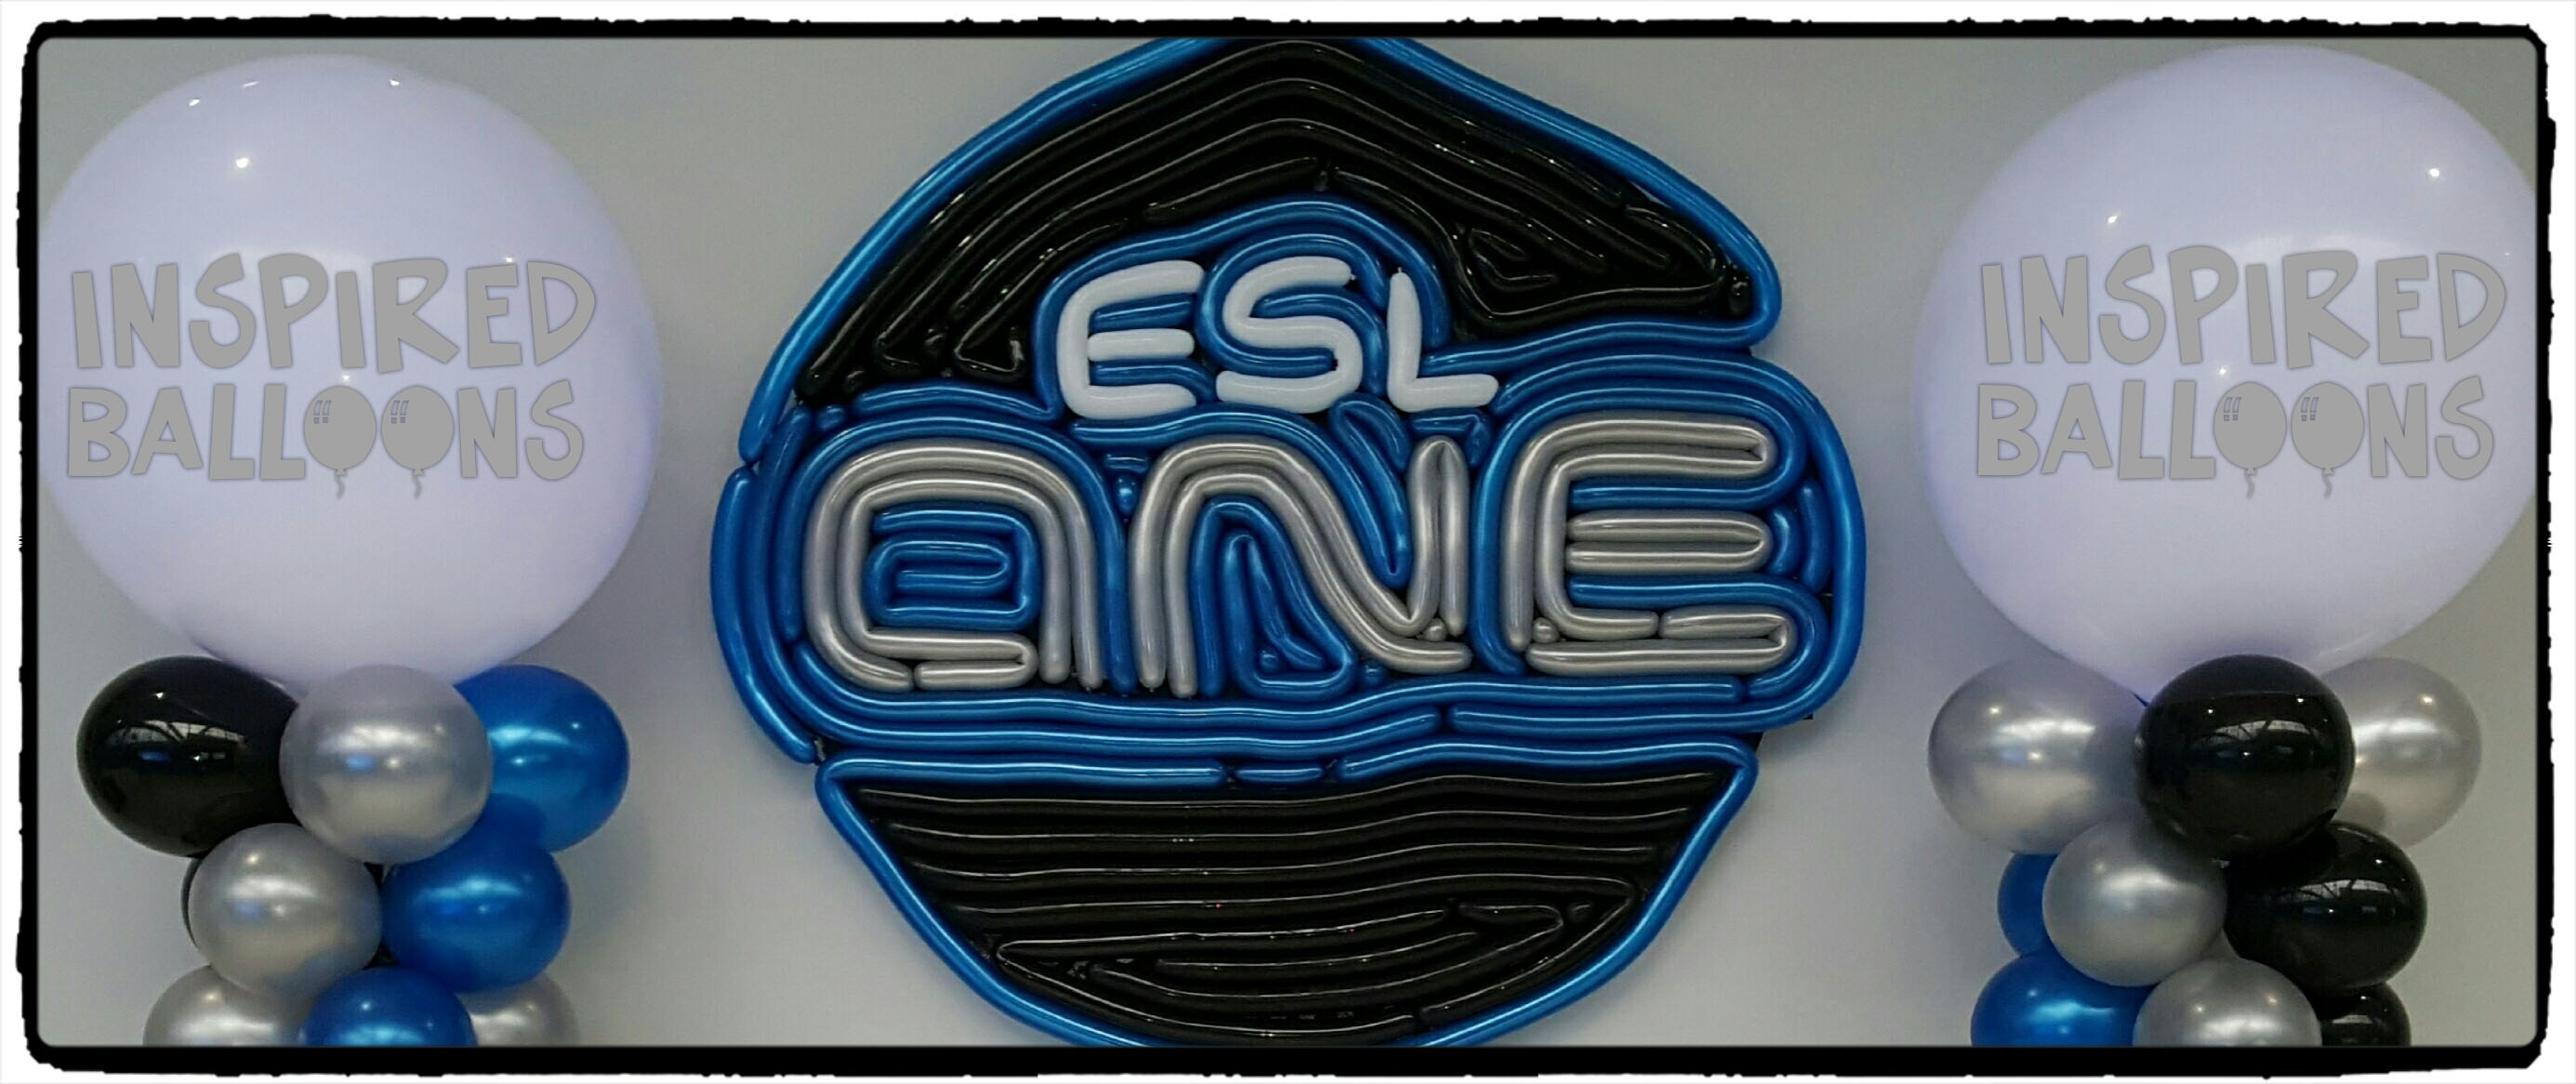 ESL ONE BALLOON LOGO